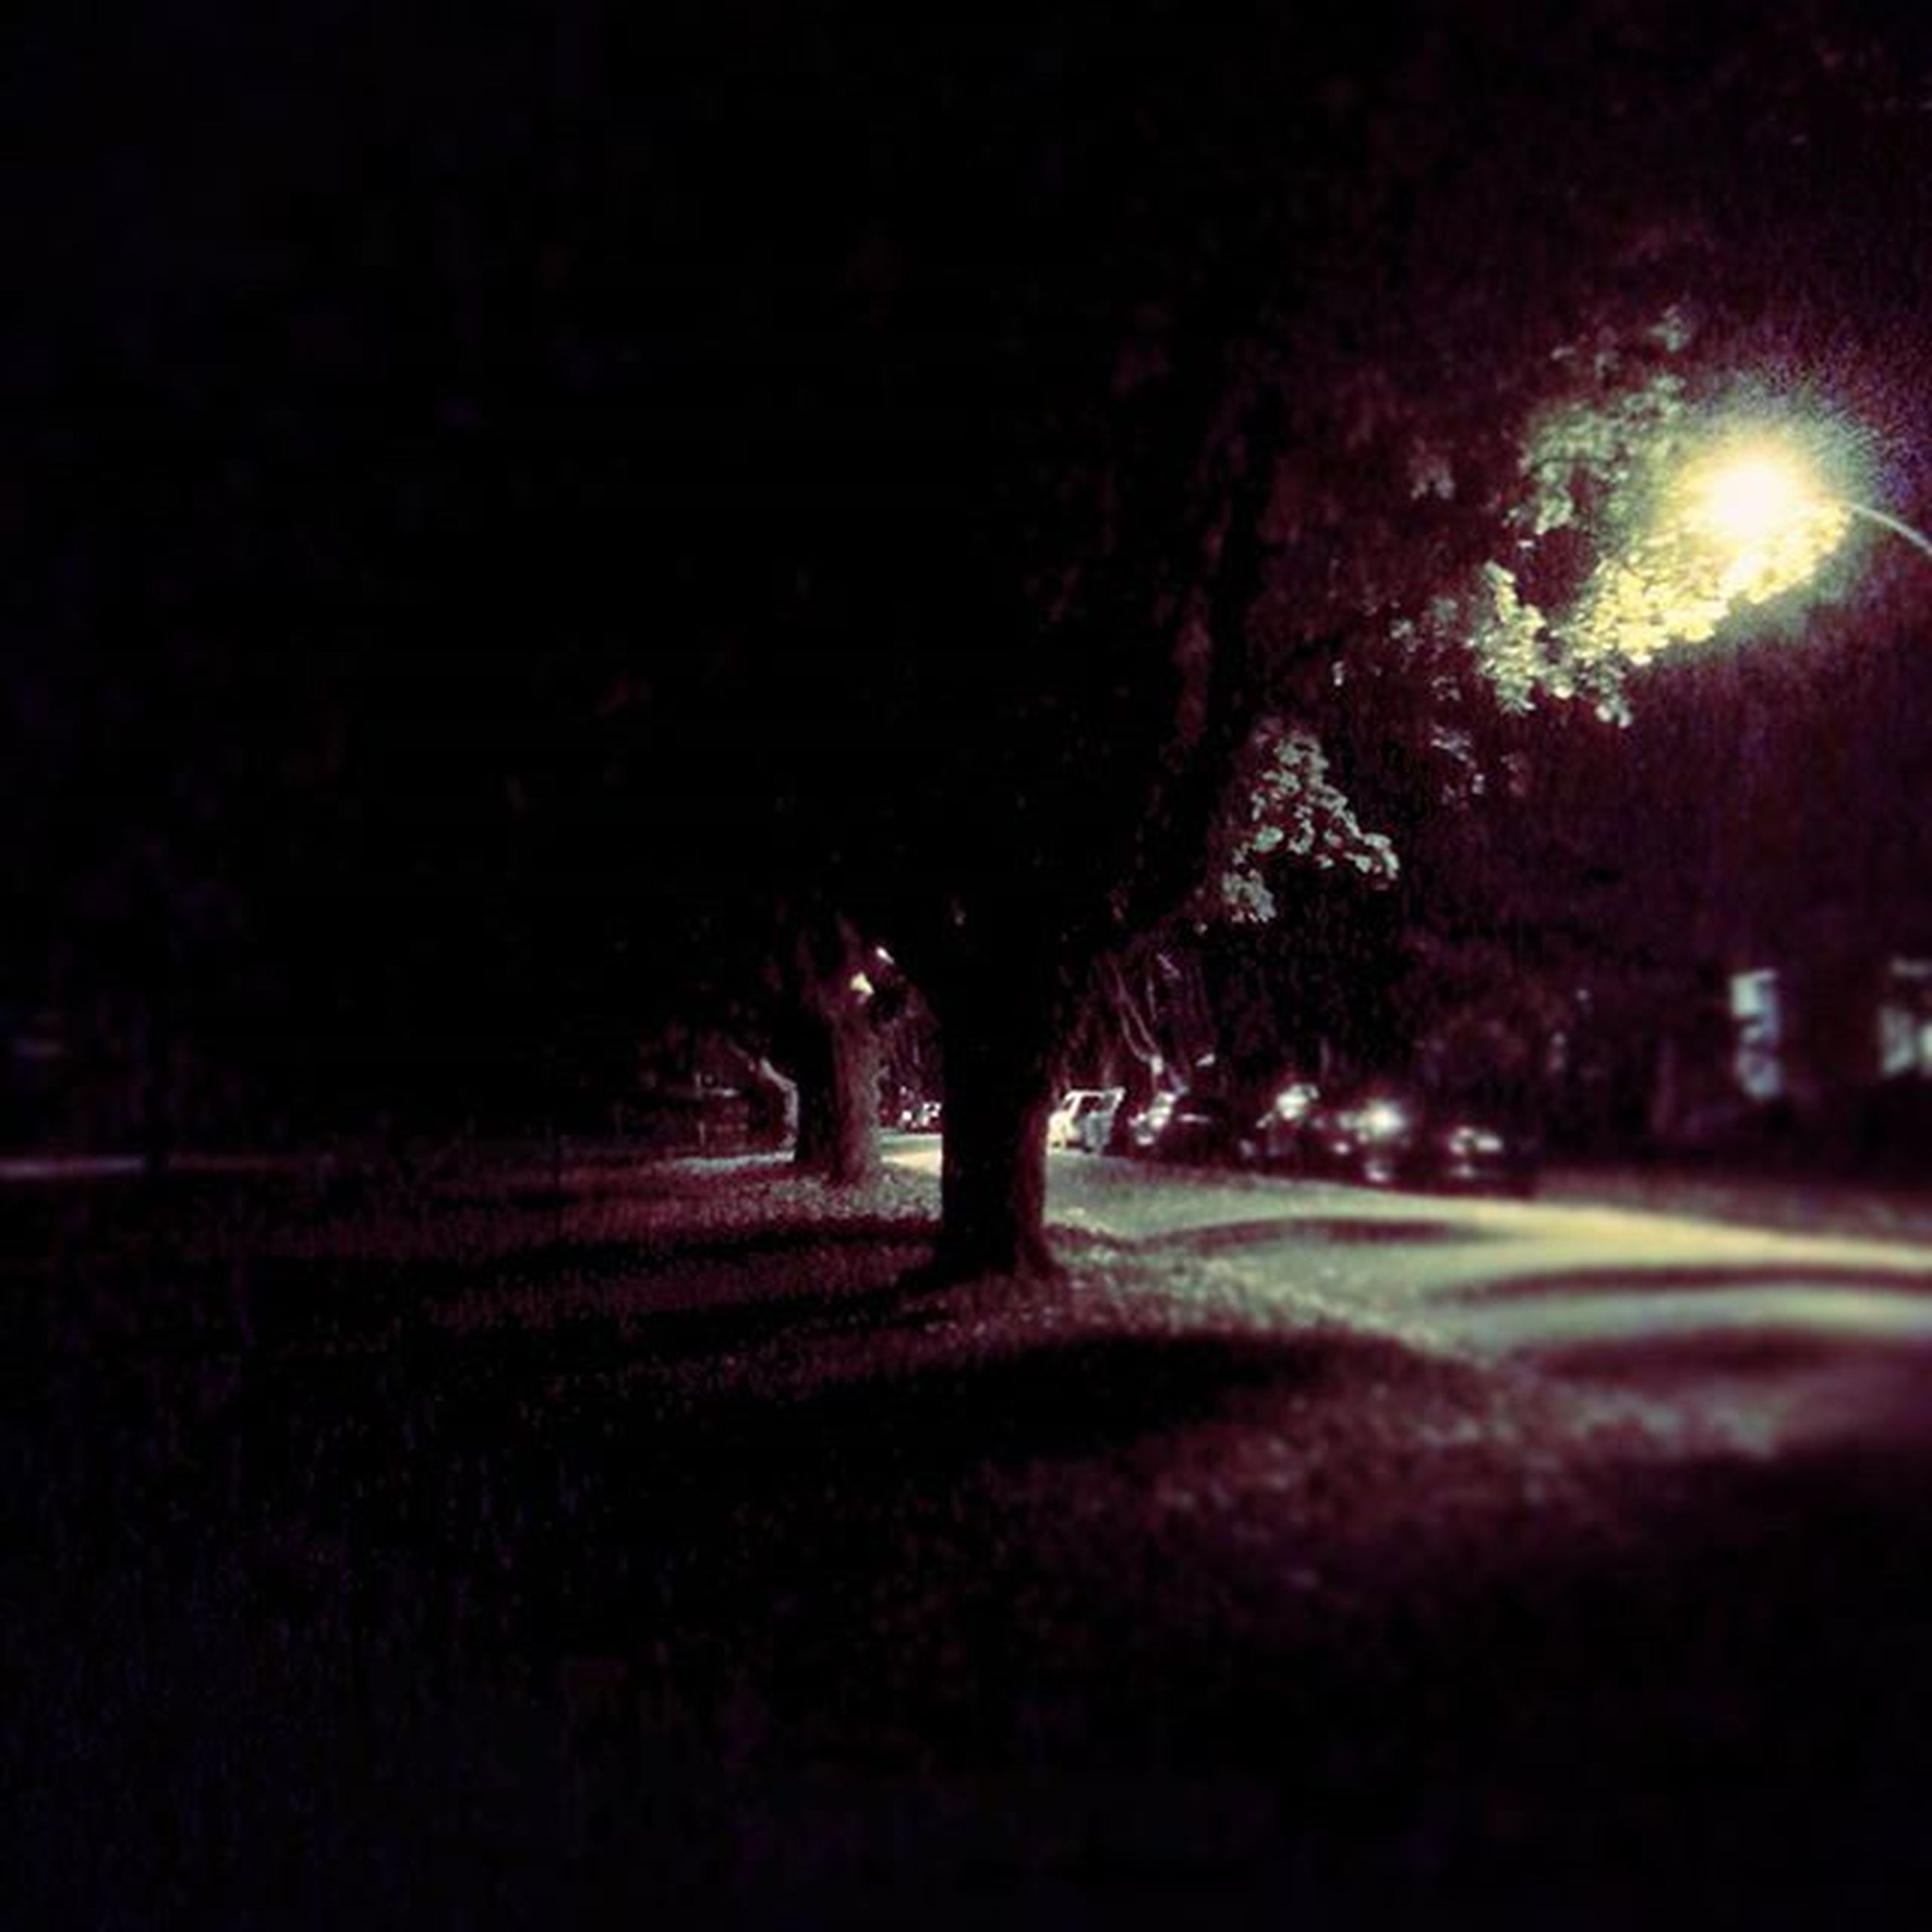 night, illuminated, dark, silhouette, tree, street, field, road, outdoors, light - natural phenomenon, lighting equipment, grass, no people, street light, copy space, glowing, shadow, tranquility, light